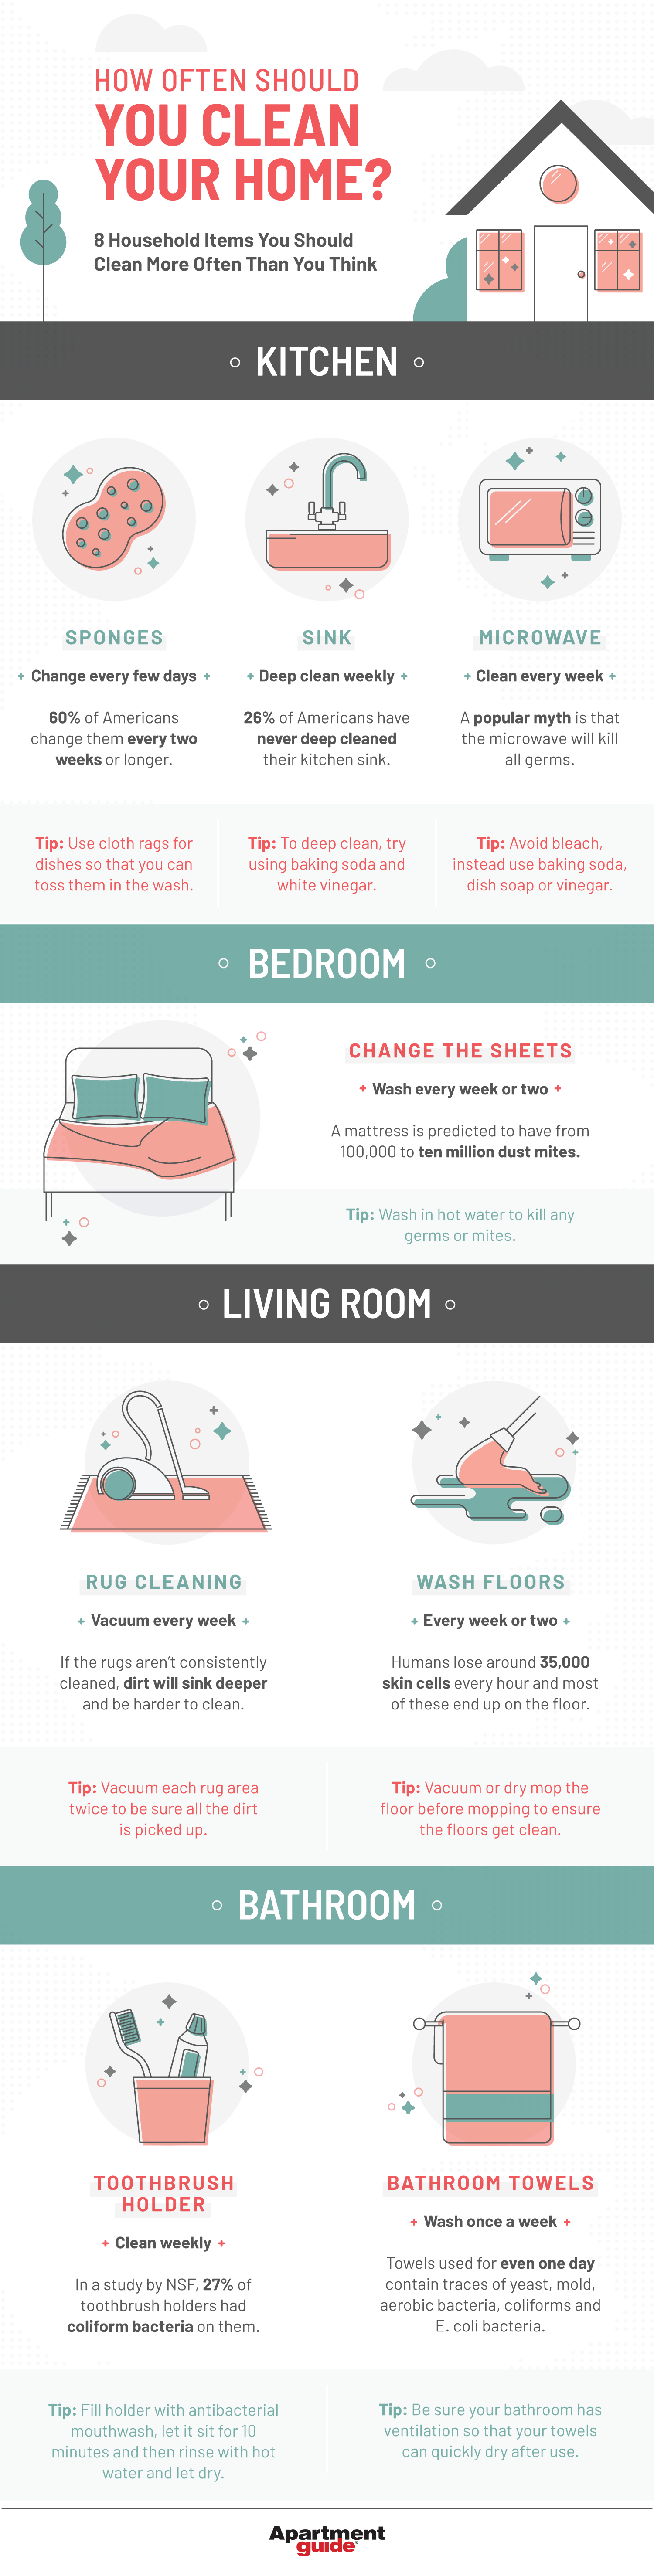 infographic that shows how often you should clean your home